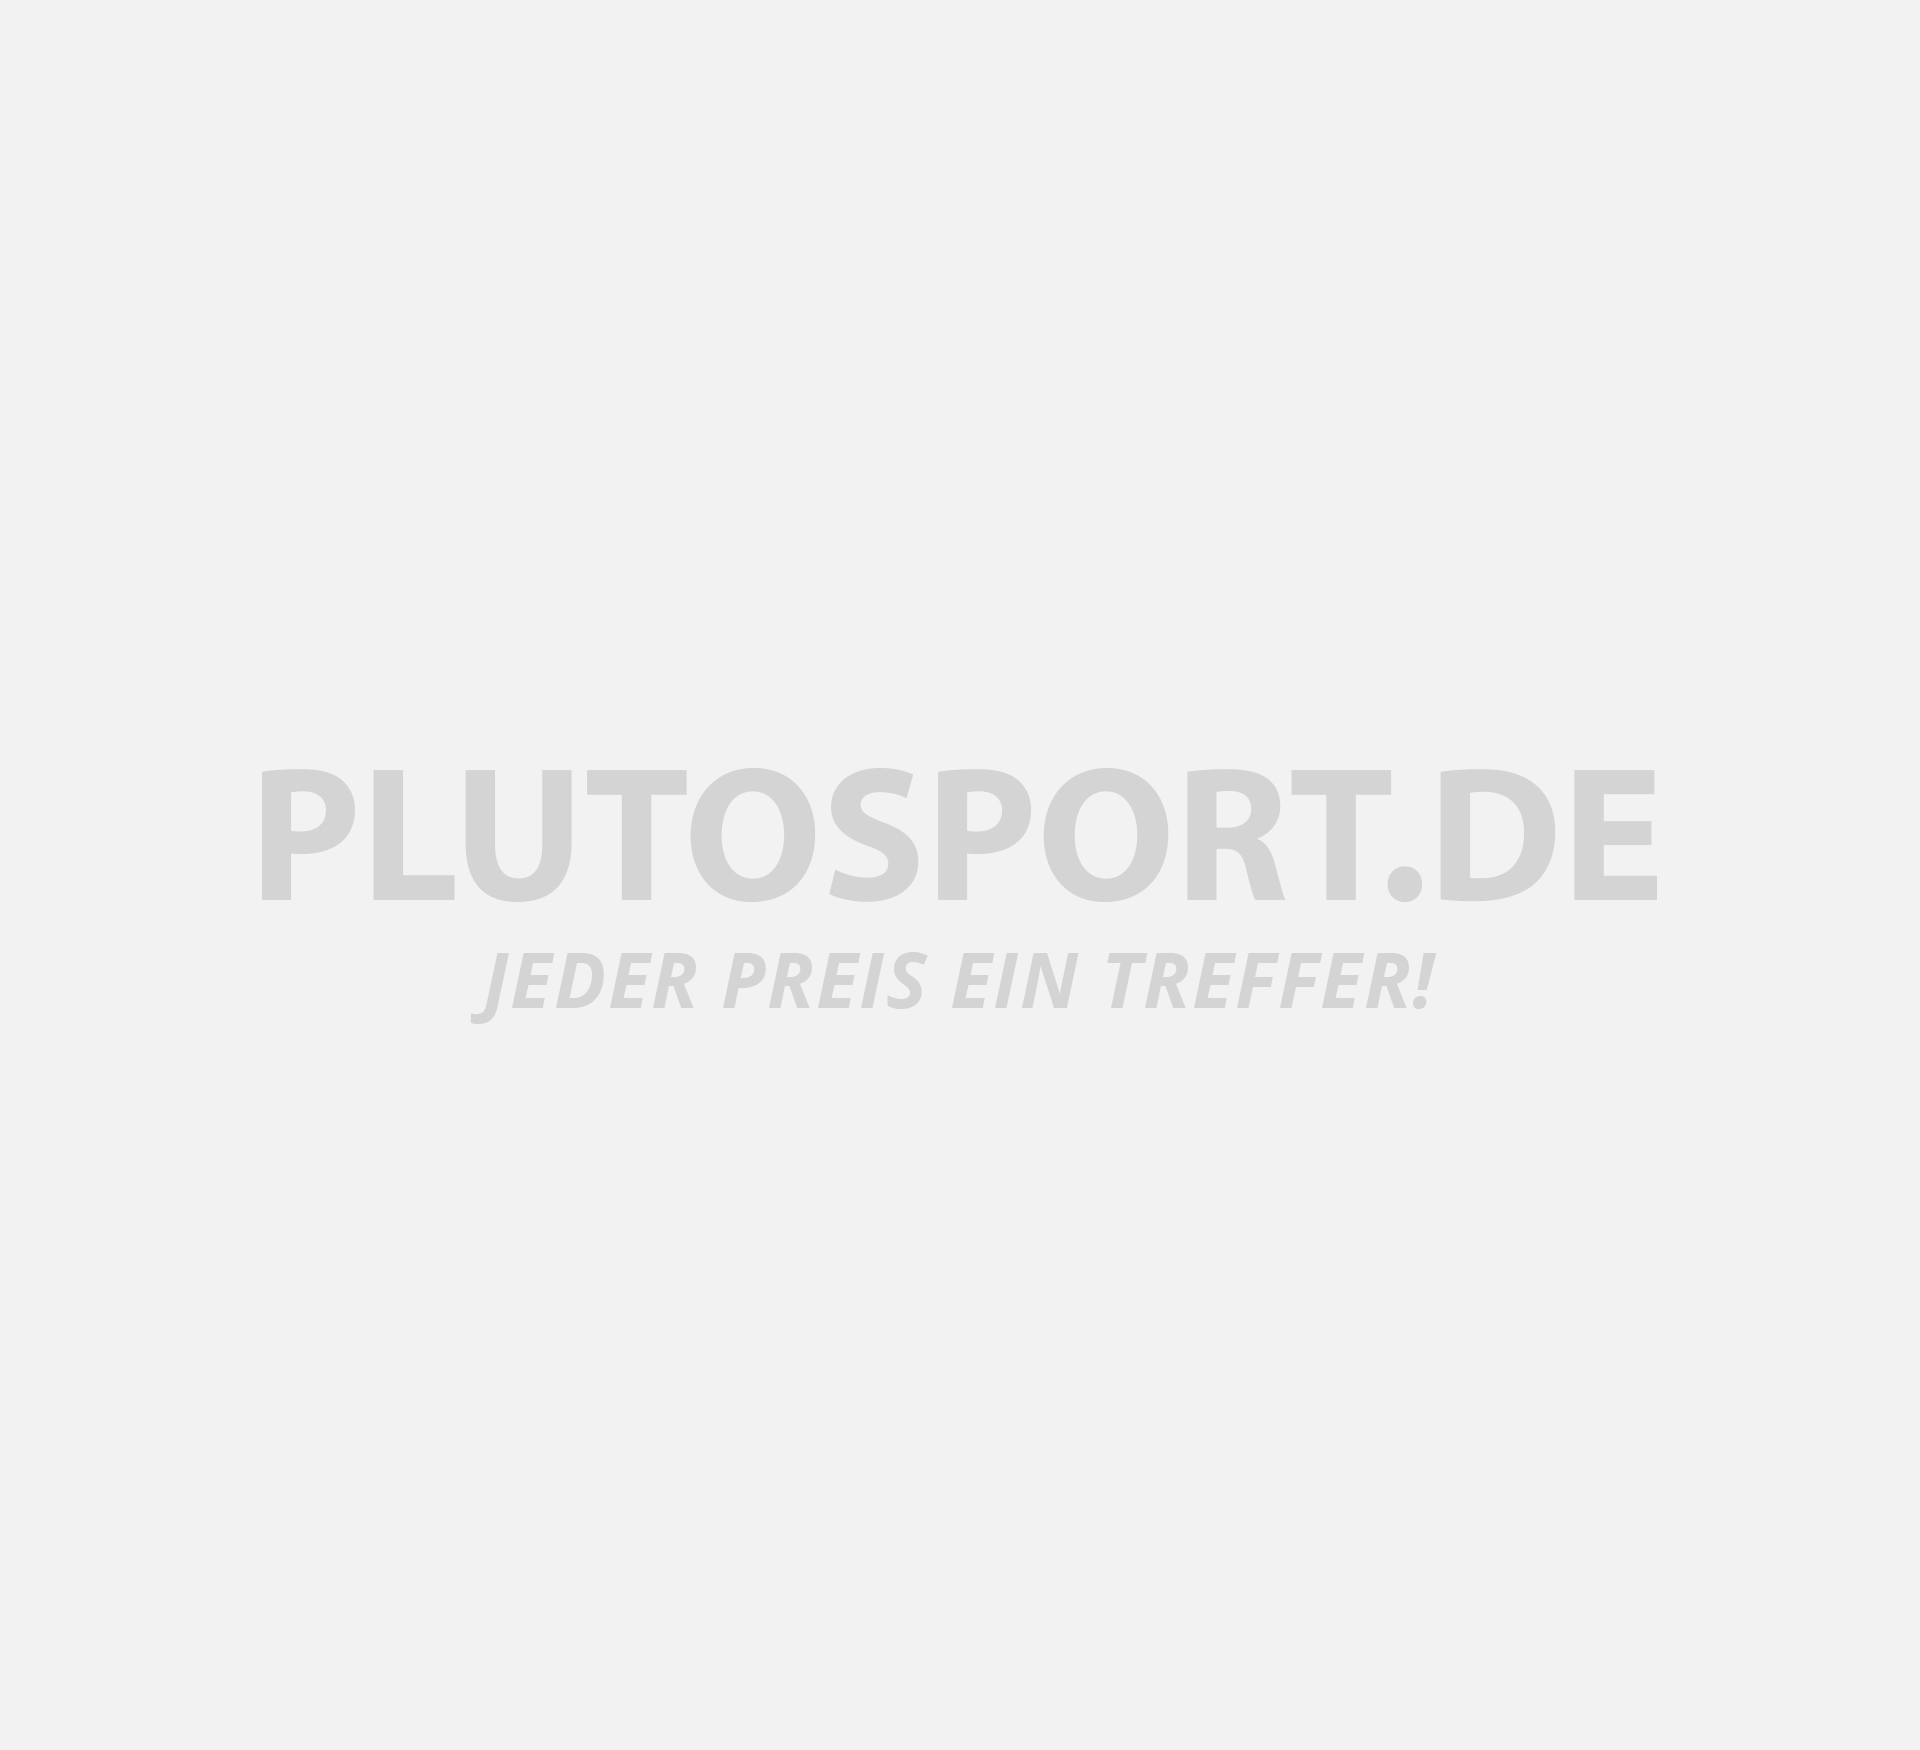 k2 inlineskates rollerblades skates raider preise und angebote k2. Black Bedroom Furniture Sets. Home Design Ideas